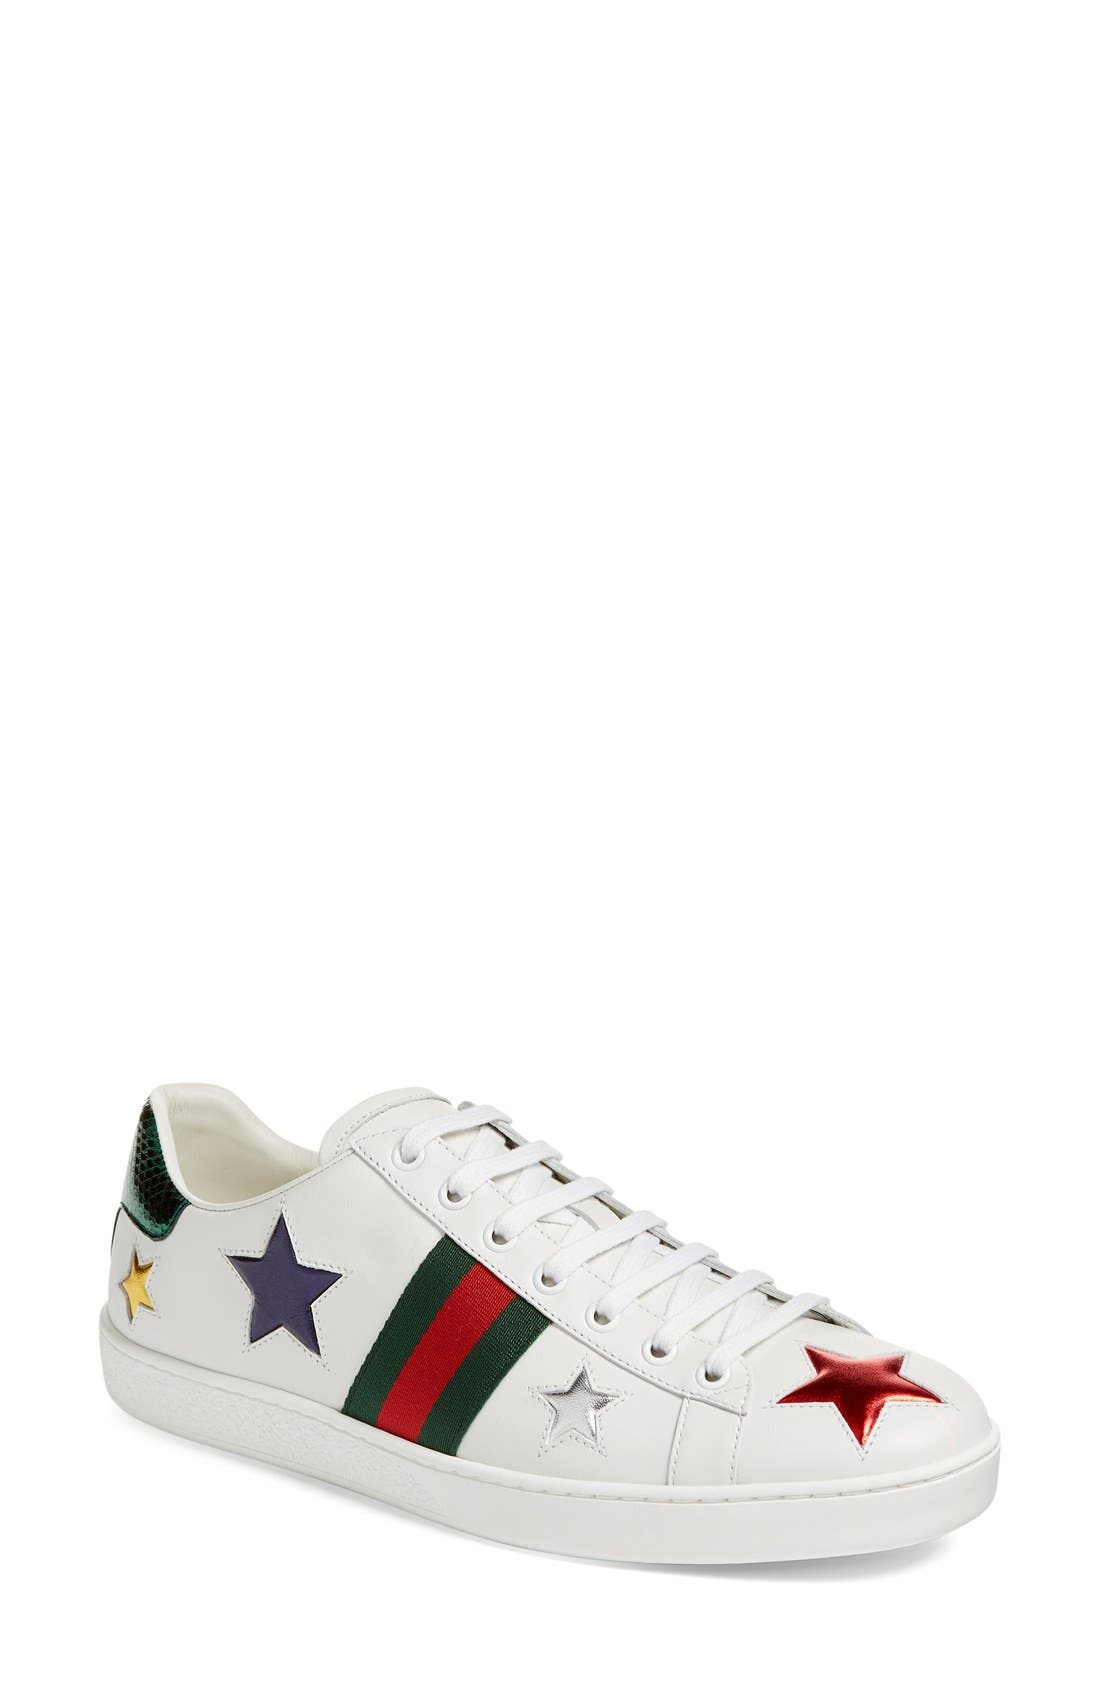 Gucci Women's New Ace Star Sneaker 6PHHLLS